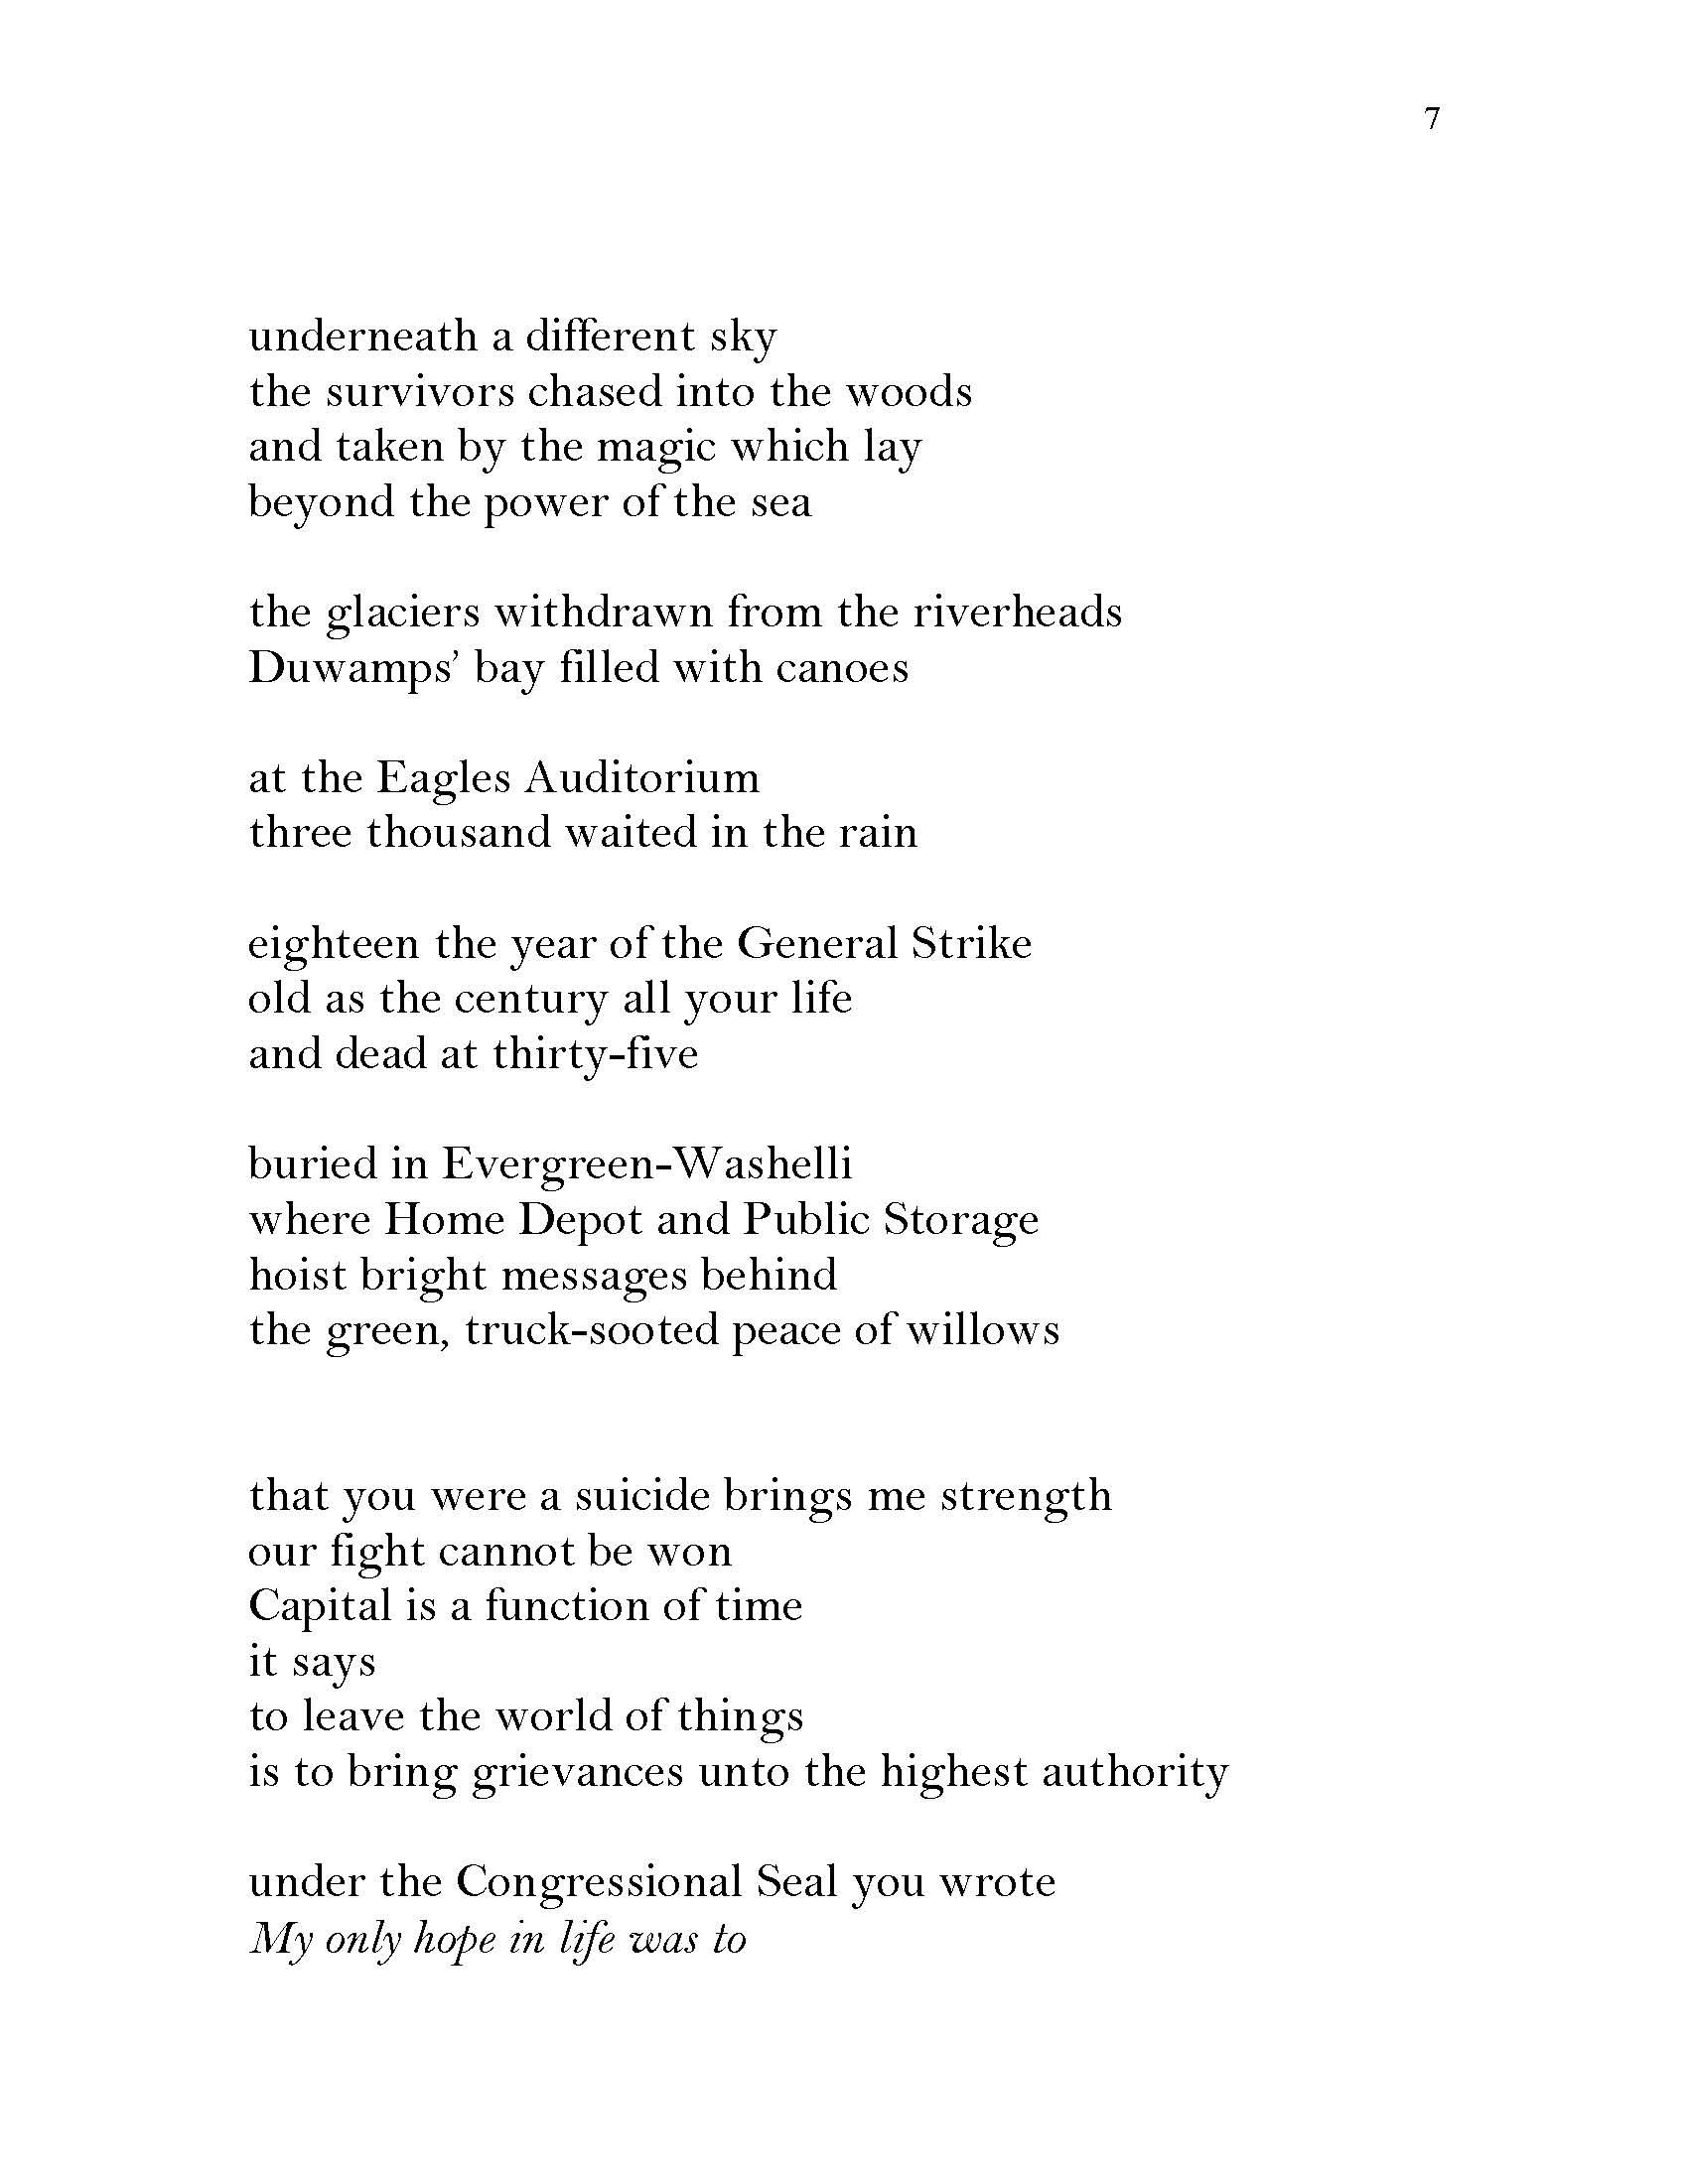 war poetry - Google Search